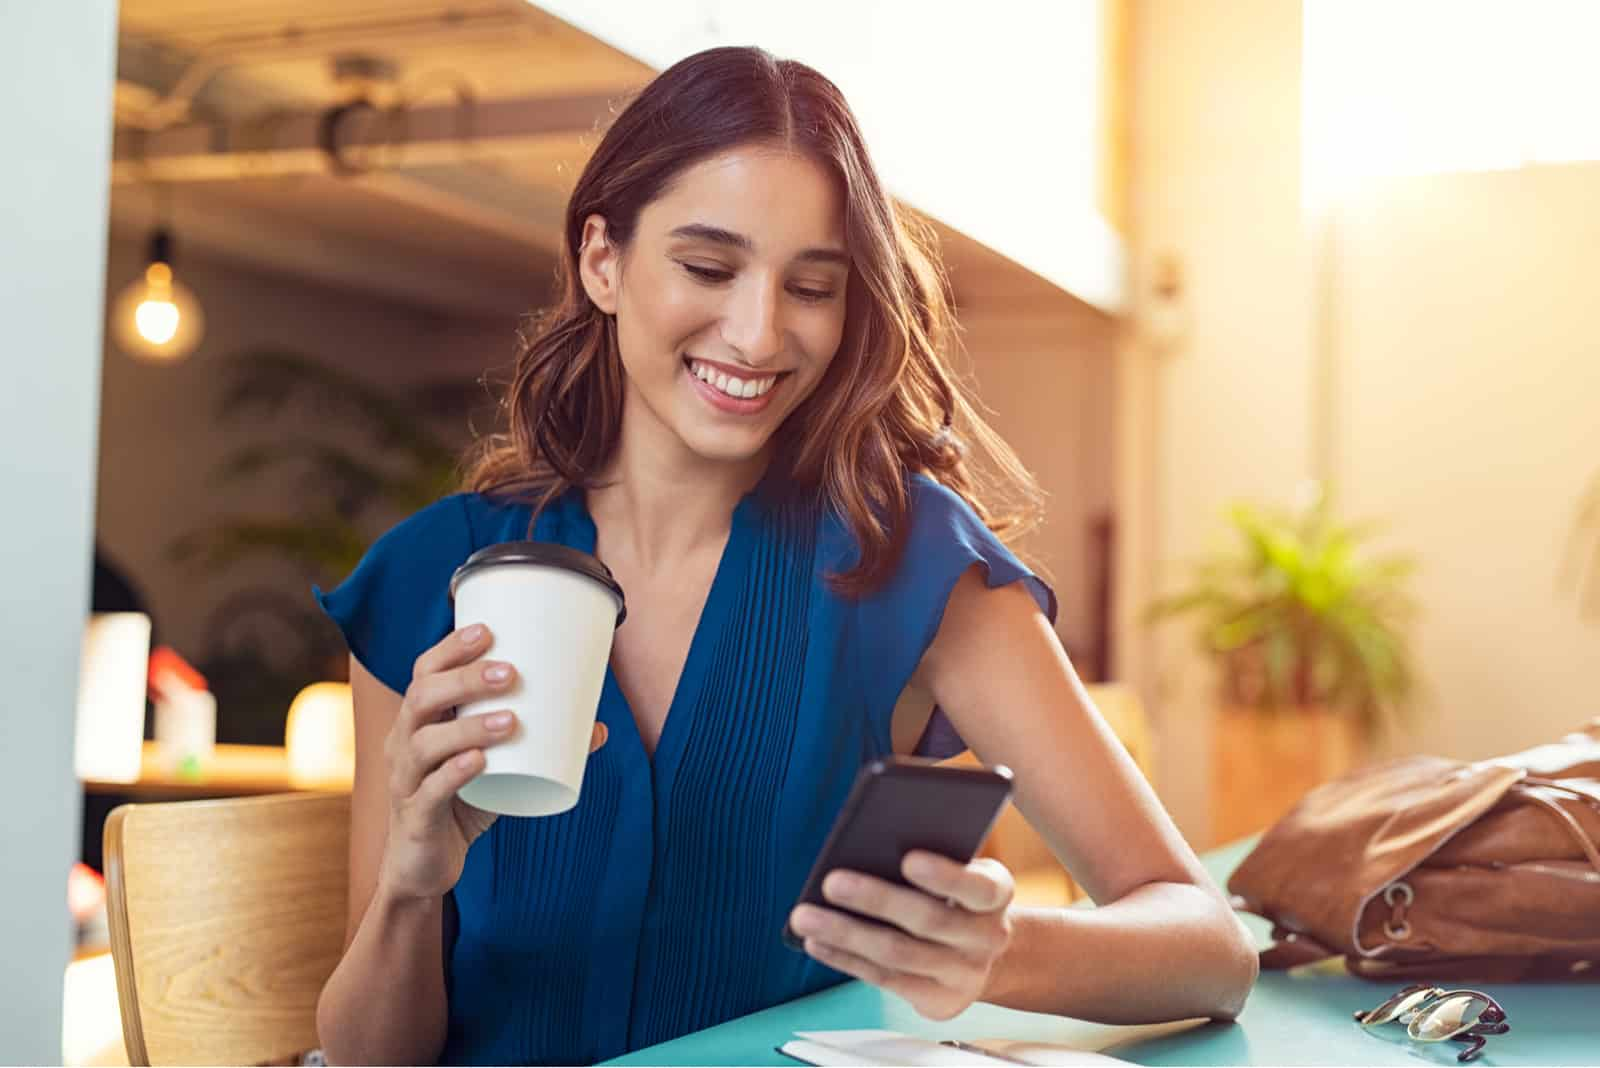 a smiling woman with long brown hair is sitting drinking coffee and typing on the phone